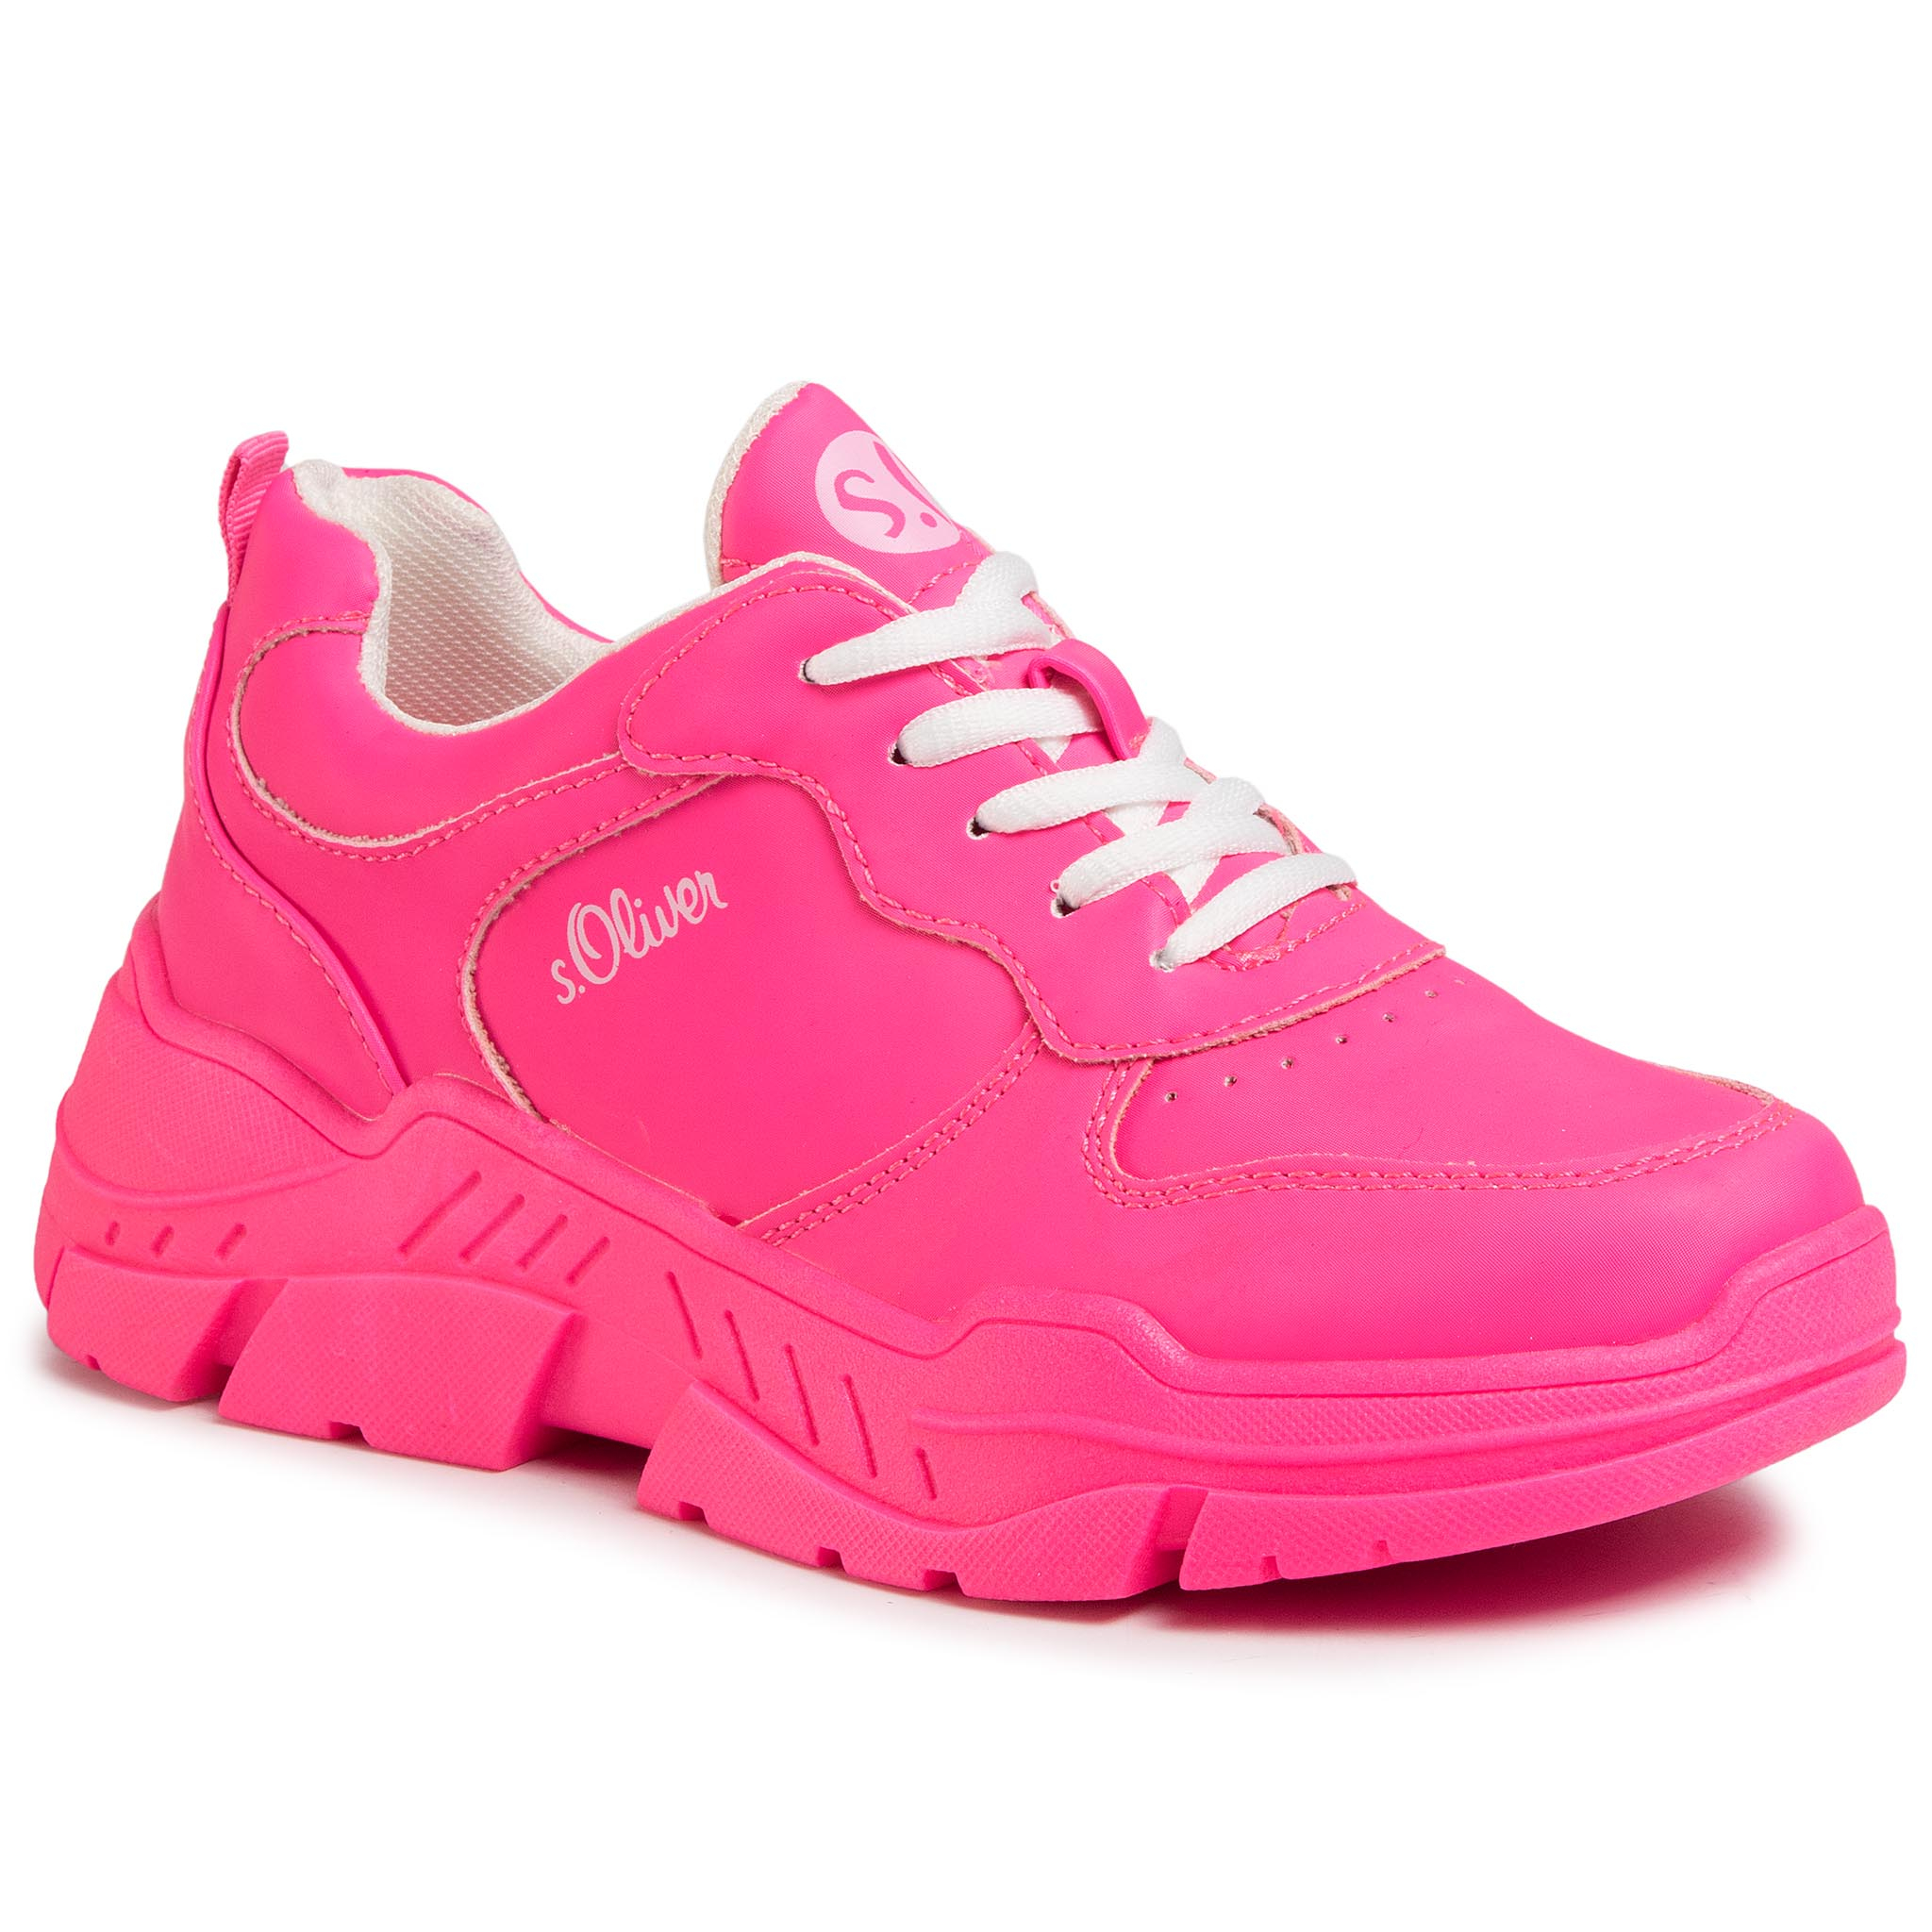 Sneakers S.OLIVER - 5-23677-24 Fuxia 532